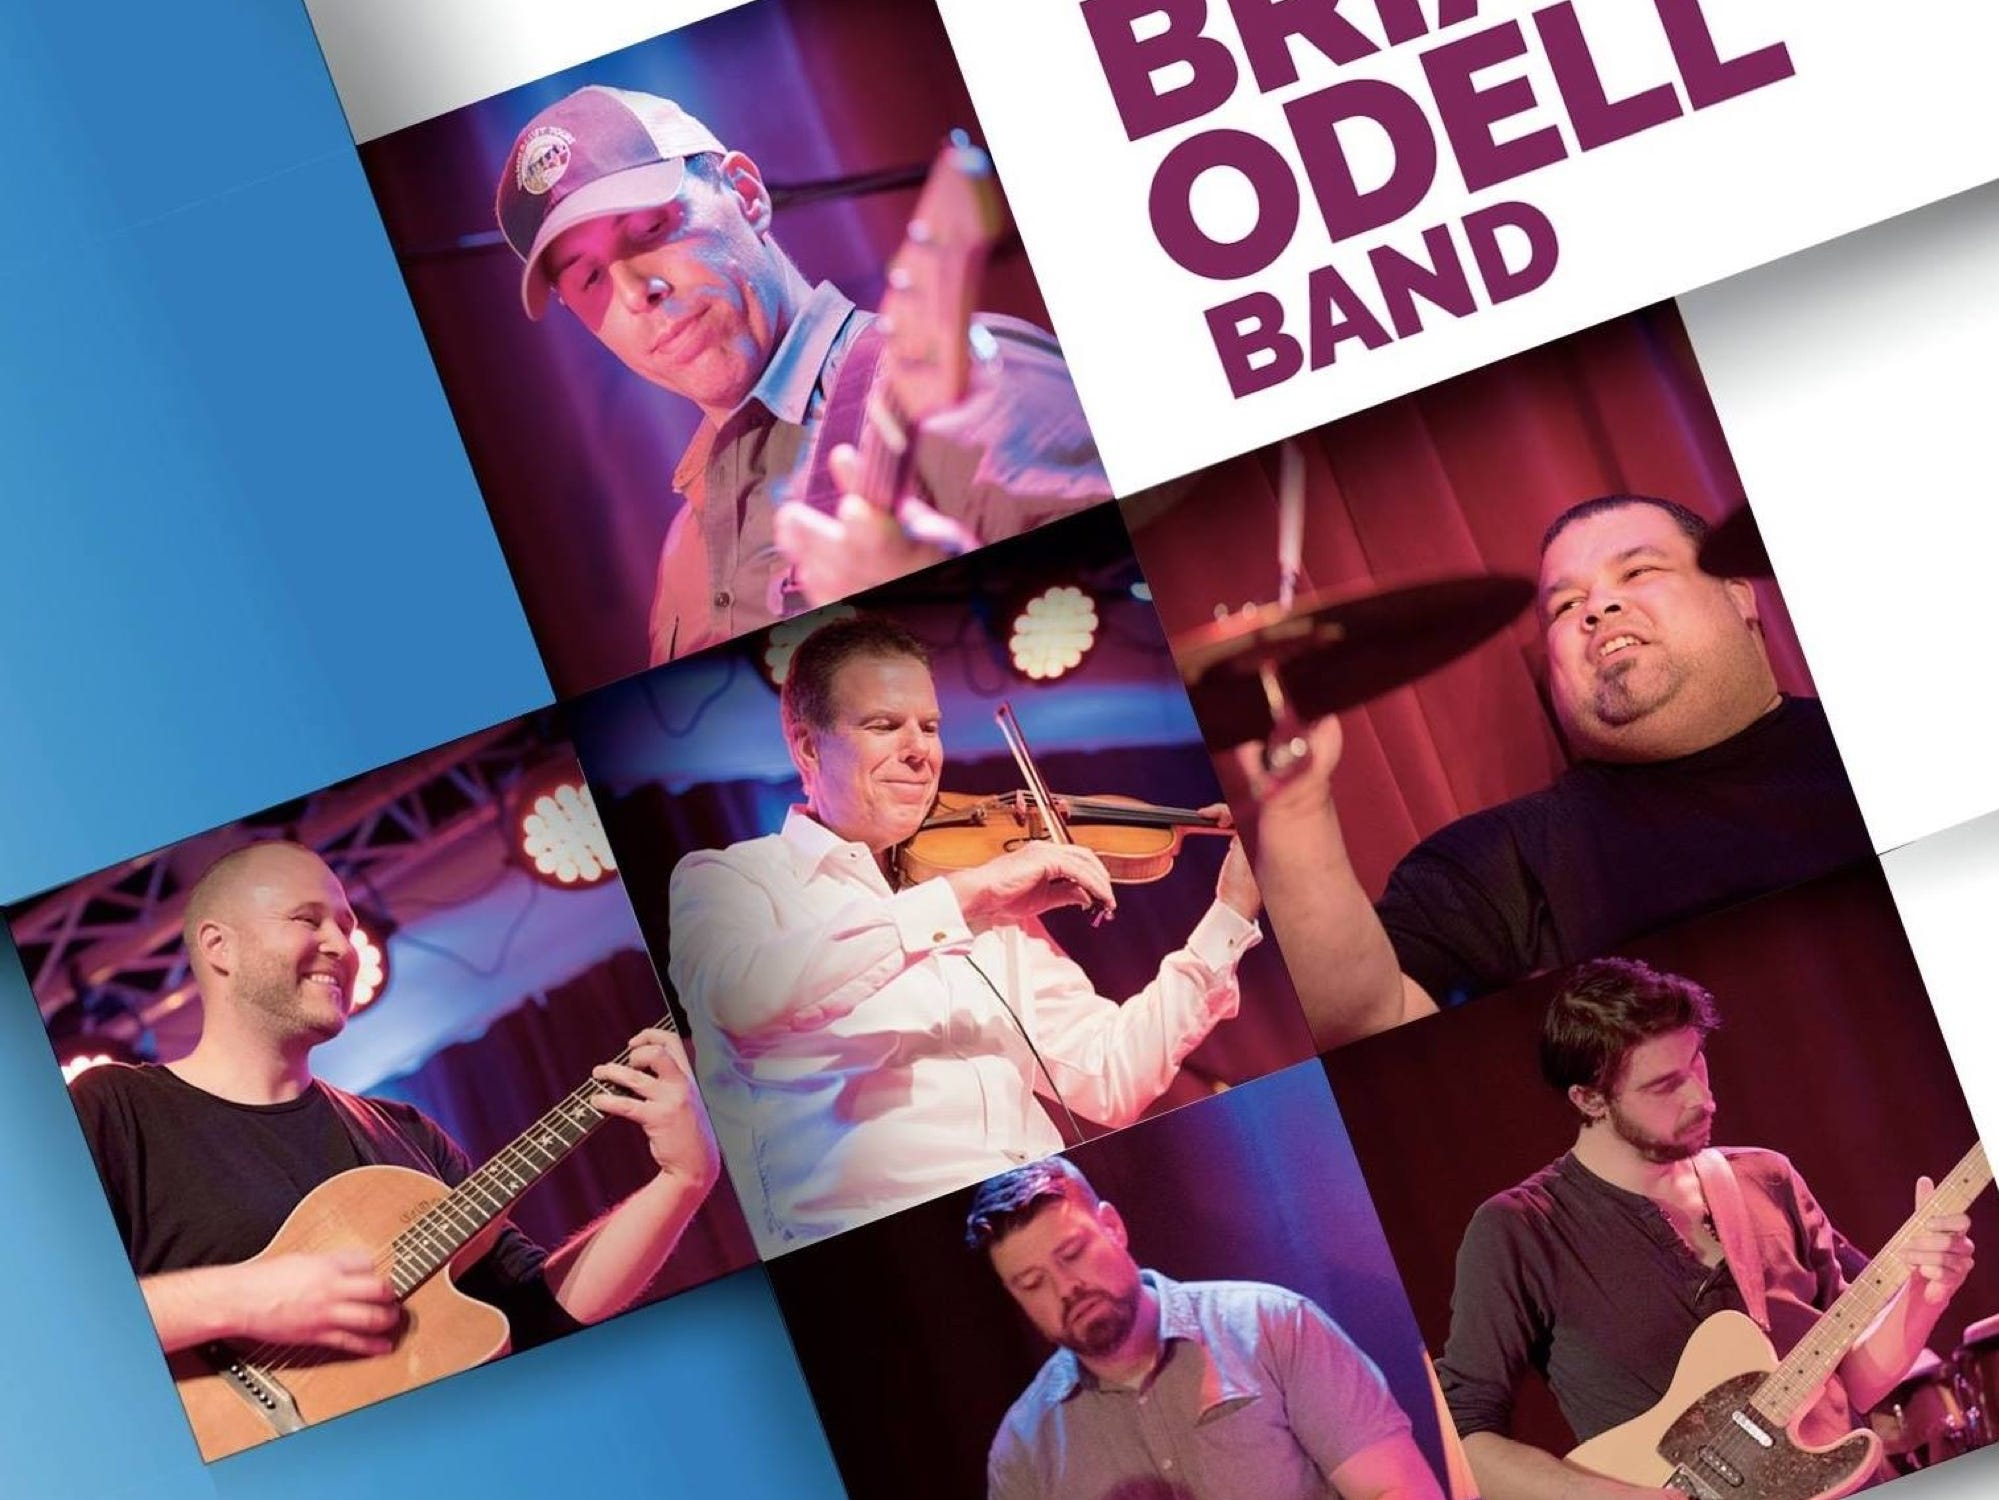 The Brian Odell Band: Live music from this Portland-based rock band with roots in funk, fusion, and folk, 9 p.m. Friday, Feb. 22, Venti's Cafe + Basement Bar, 325 Court St. NE. $8 cover.